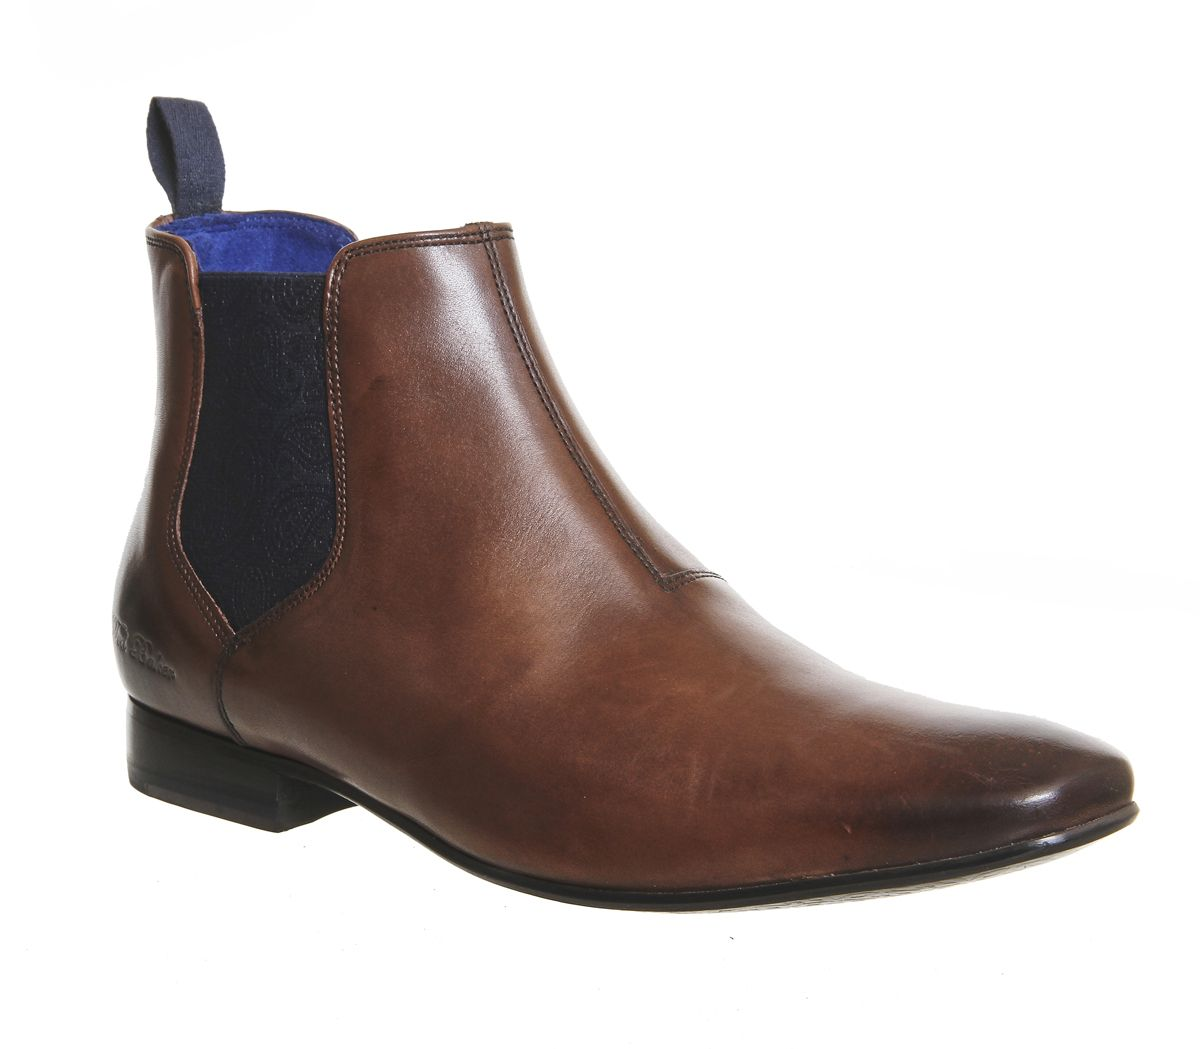 d2116e84861 Ted Baker Hourb 2 Chelsea Boots Brown Leather - Boots